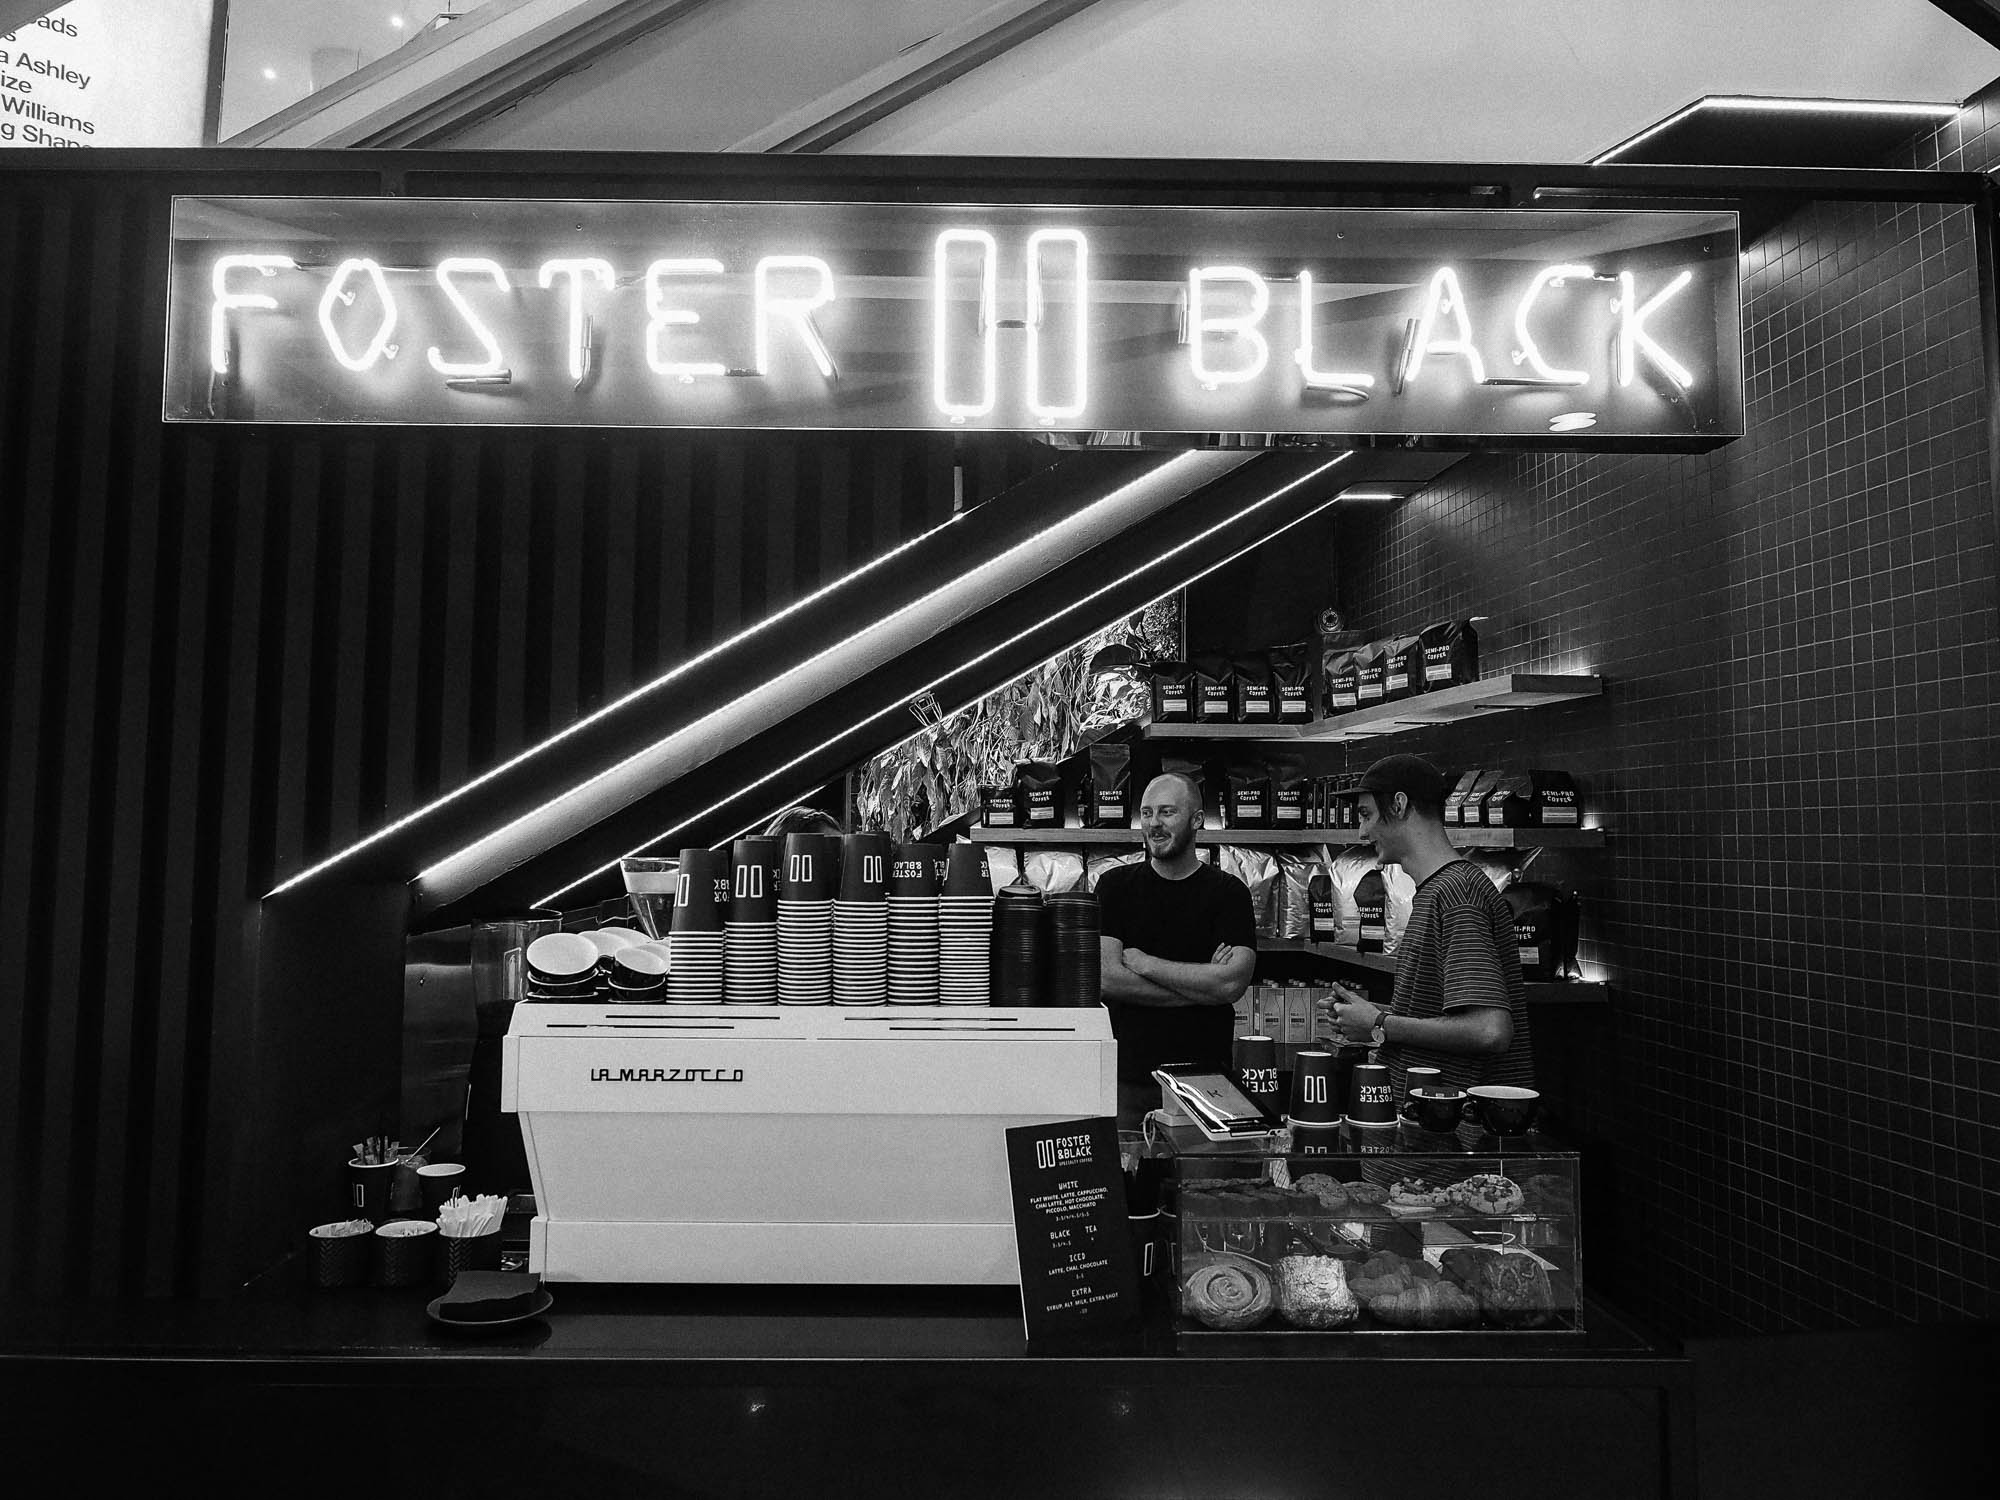 Foster and Black Cafes